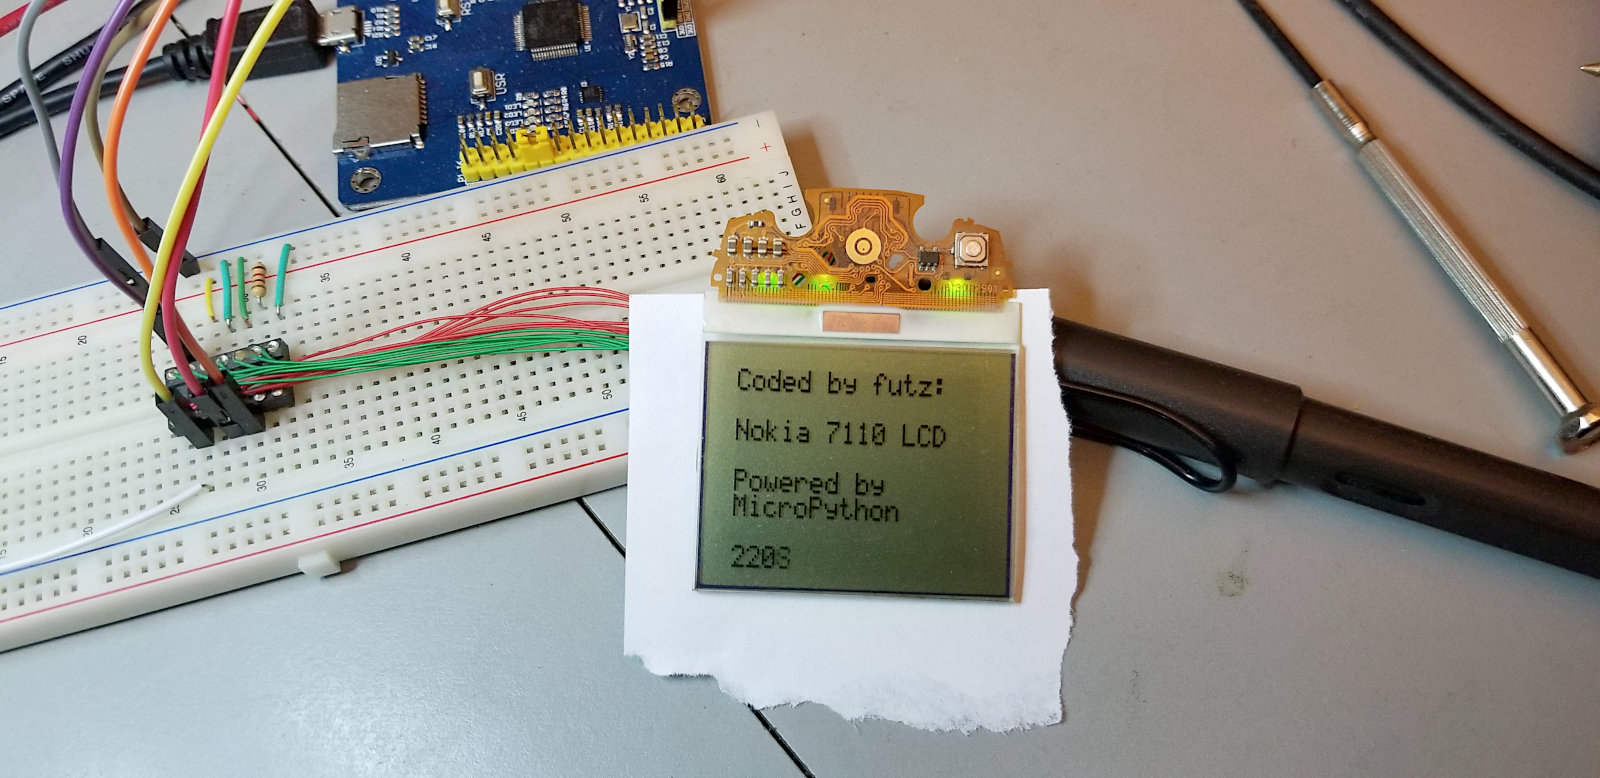 Pyboard driving Nokia 7110 LCD | Futz's Microcontrollers & Robotics